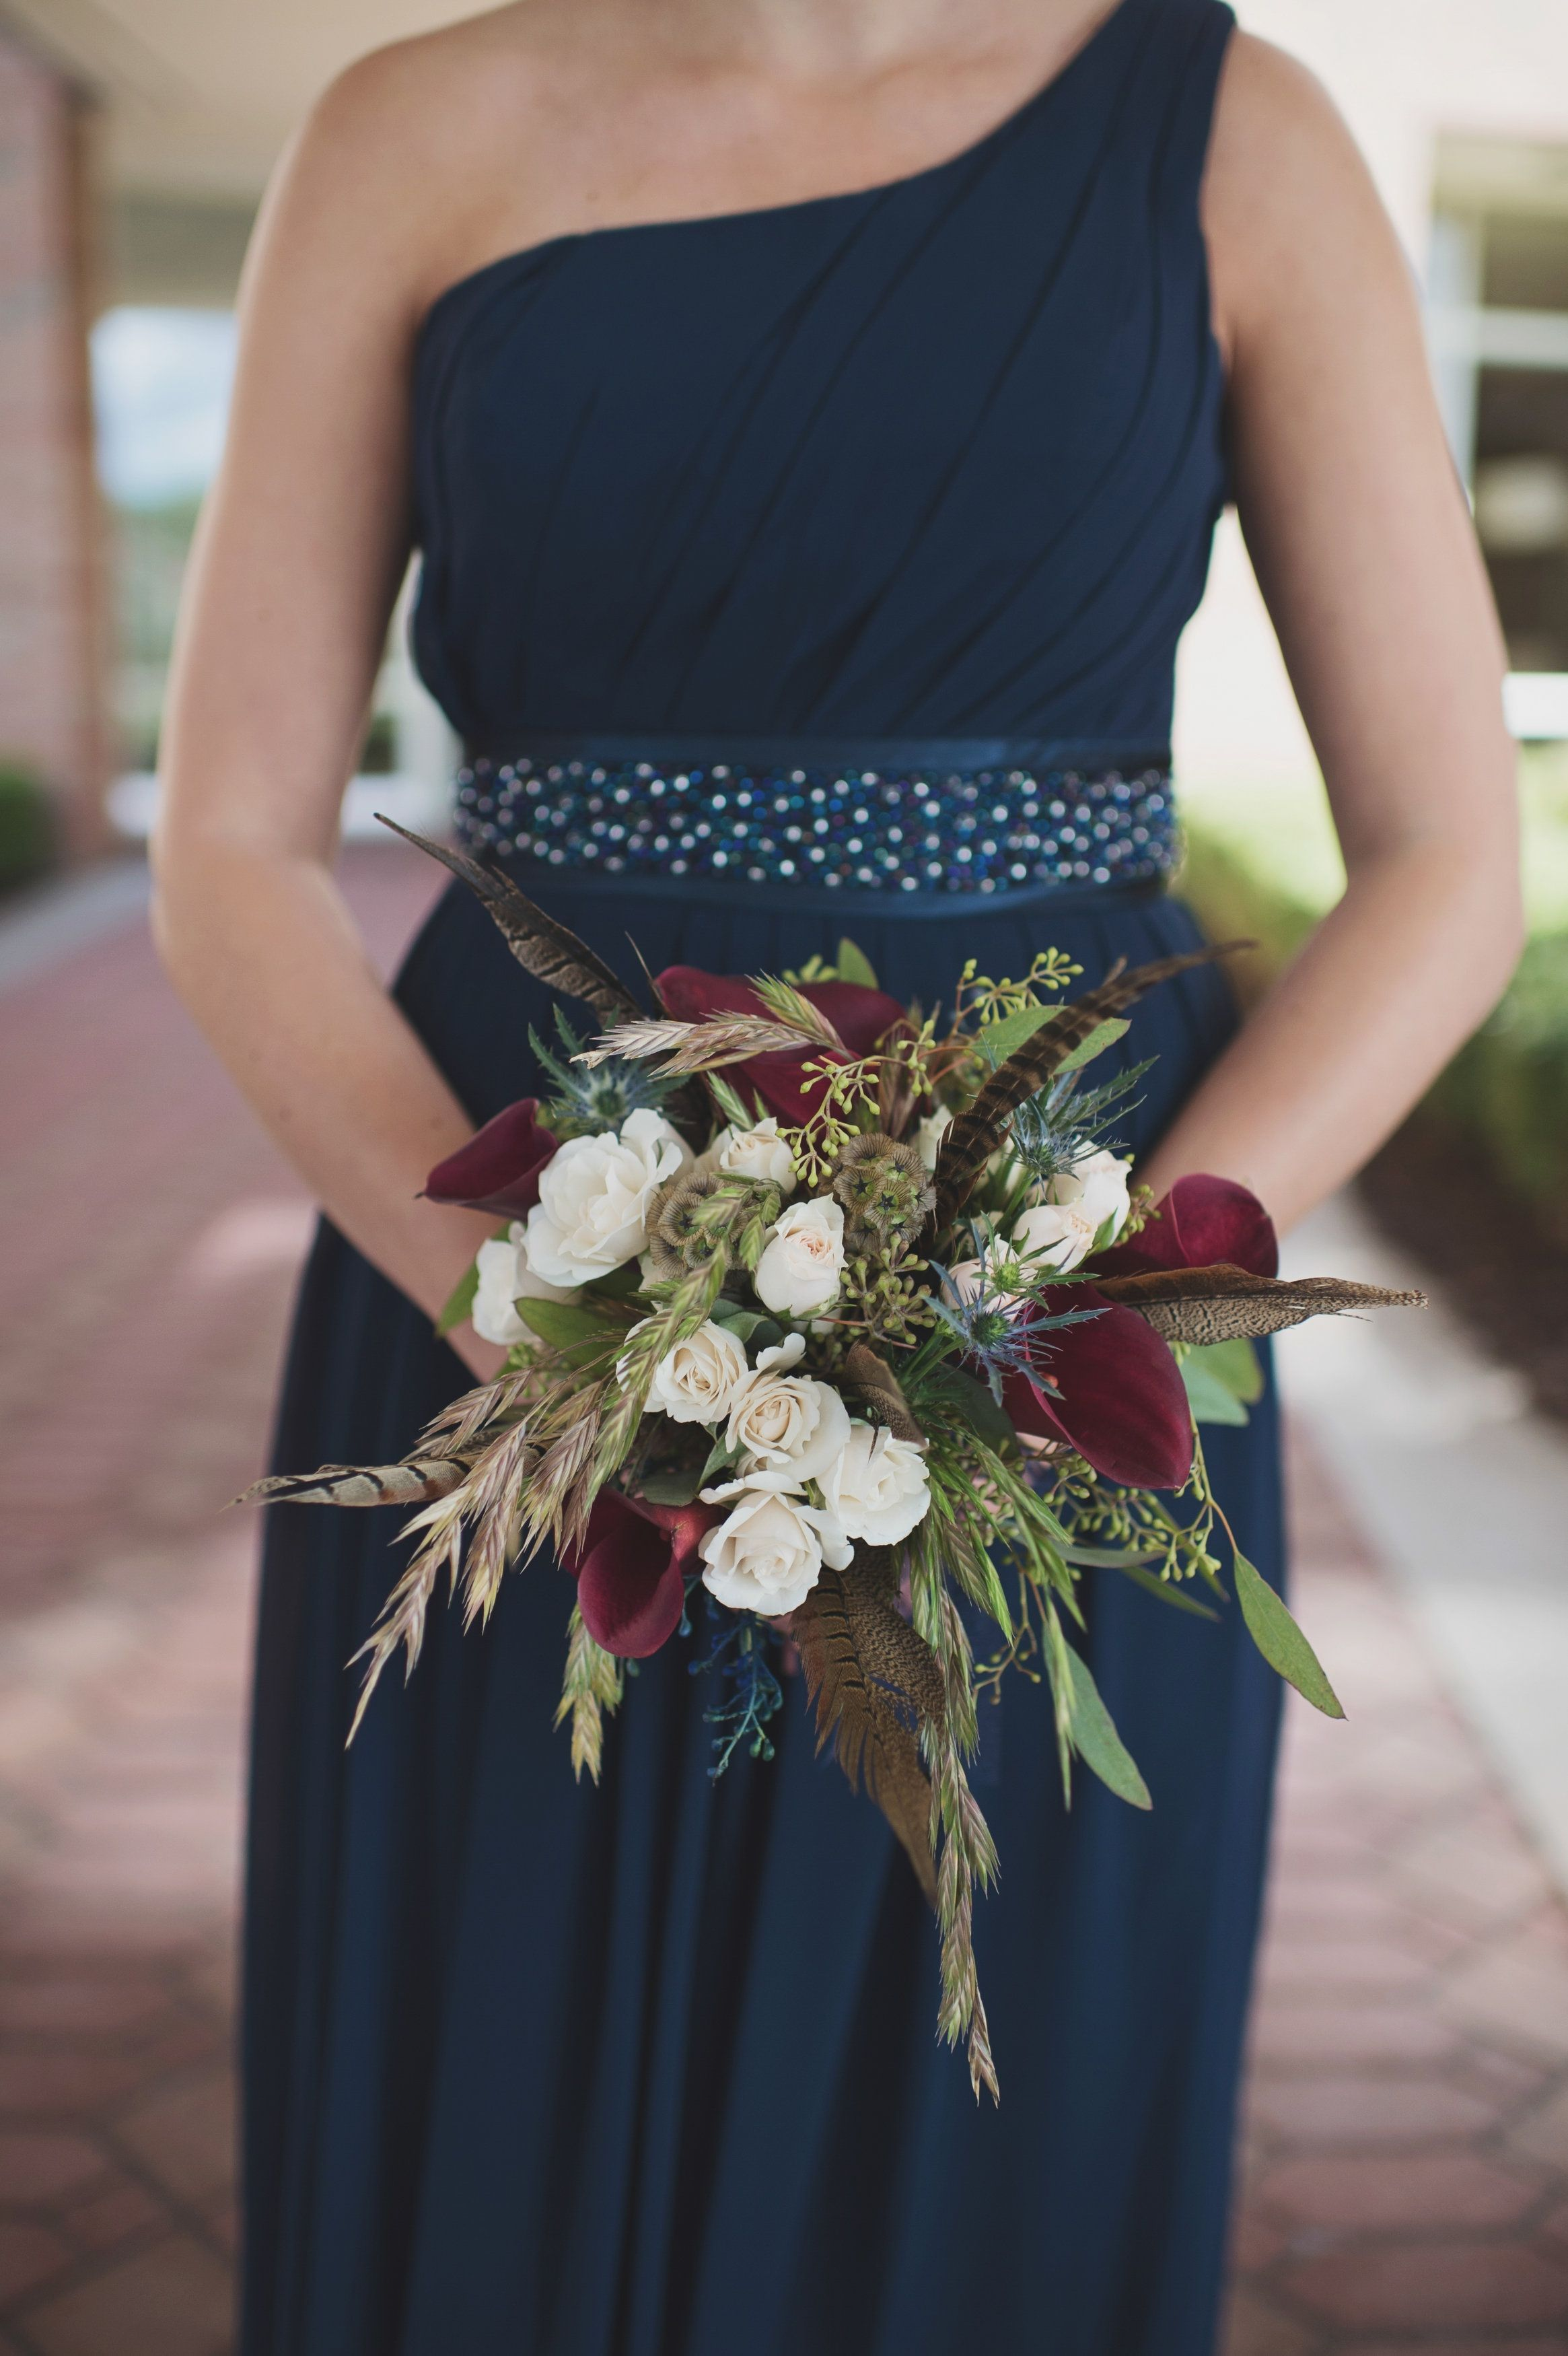 How to Submit Weddings to The Knot Bridesmaid bouquet